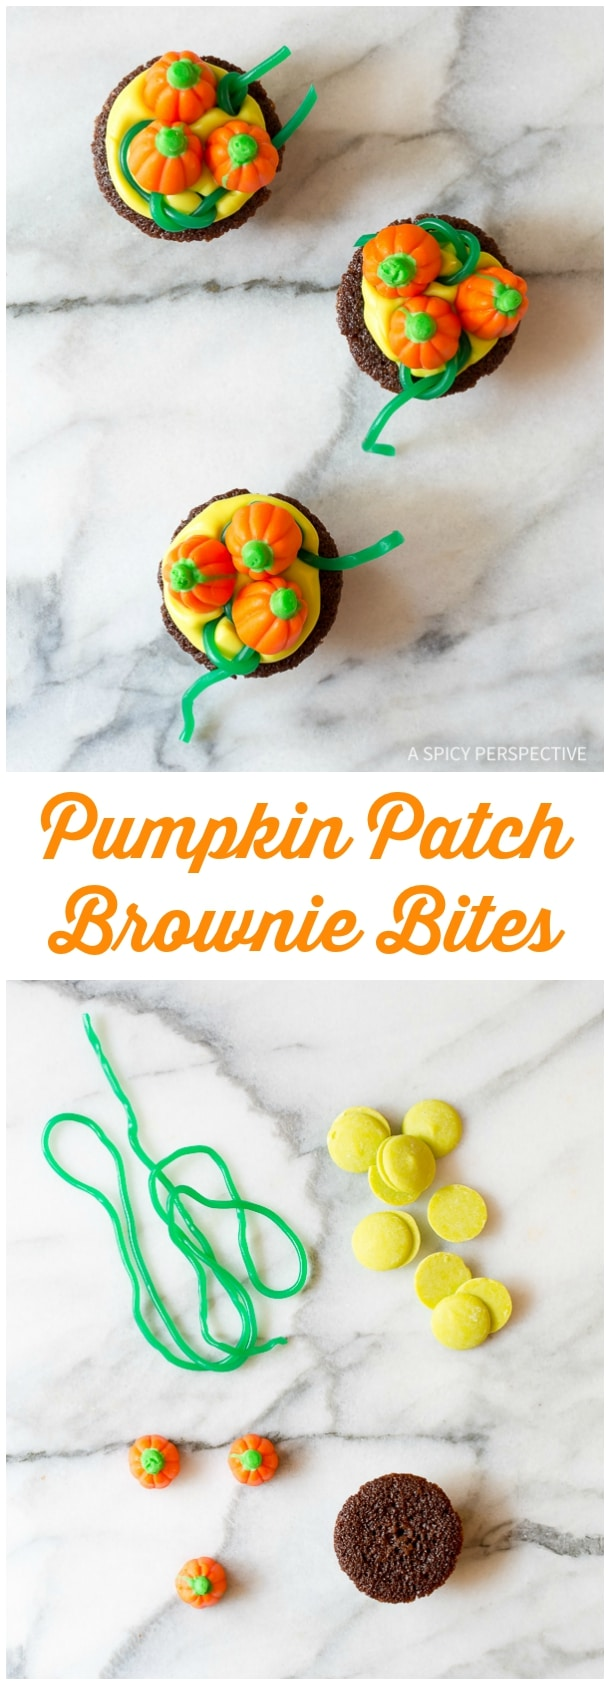 Learn How to Make Pumpkin Patches - 5 Easy Halloween Treats Made with Brownie Bites on ASpicyPerspective.com - Fun for Kids!